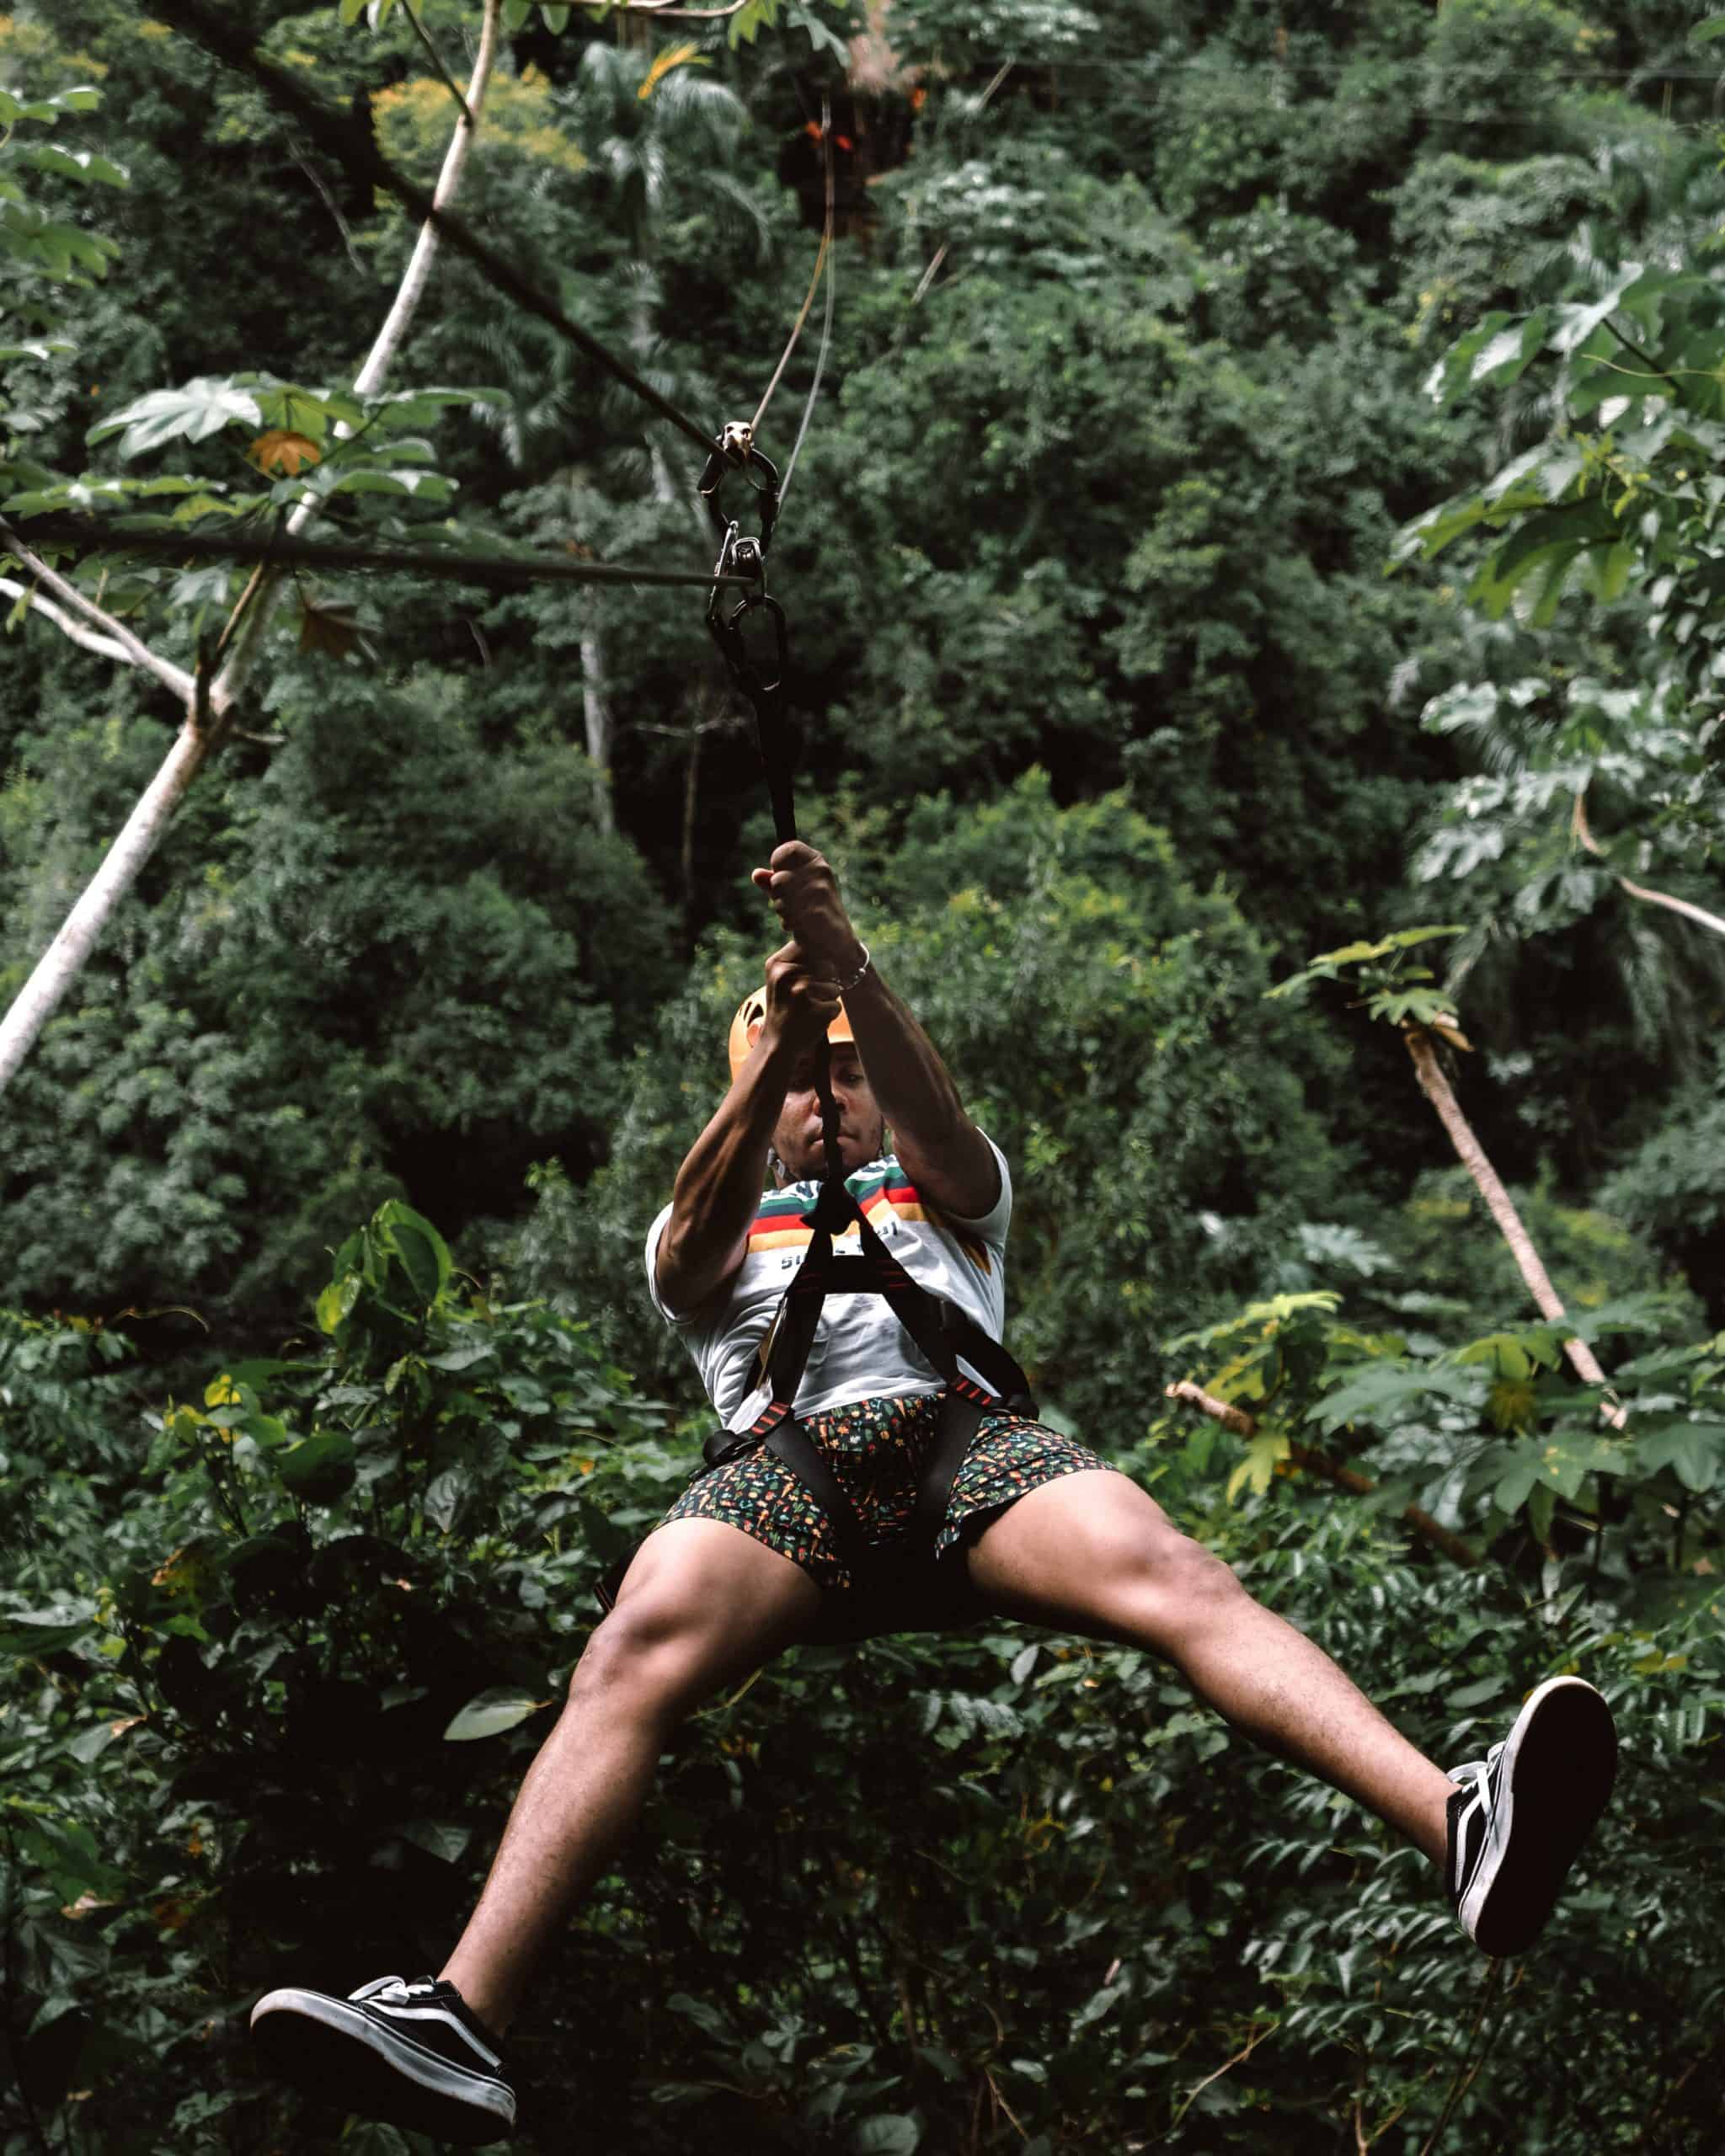 Ropes For The Outdoors: What To Use & How To Use